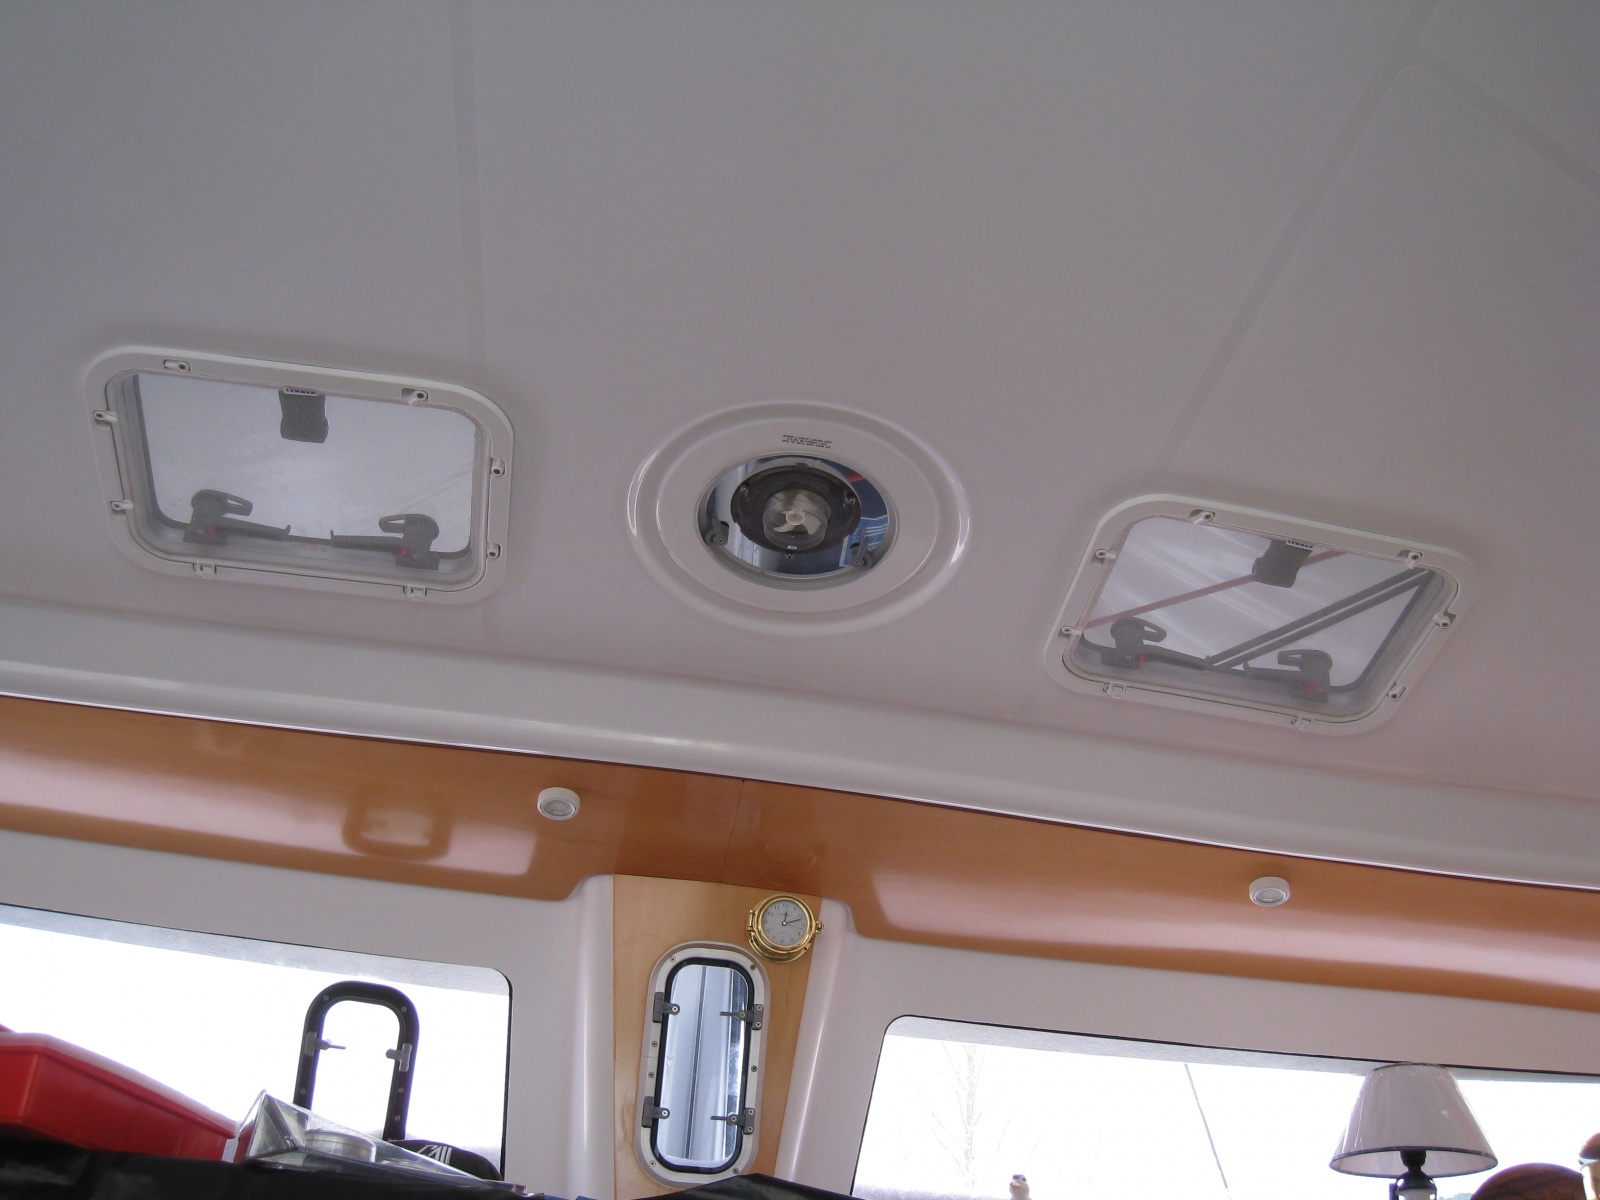 Click image for larger version  Name:new additions to boat 002.jpg Views:286 Size:349.4 KB ID:23113